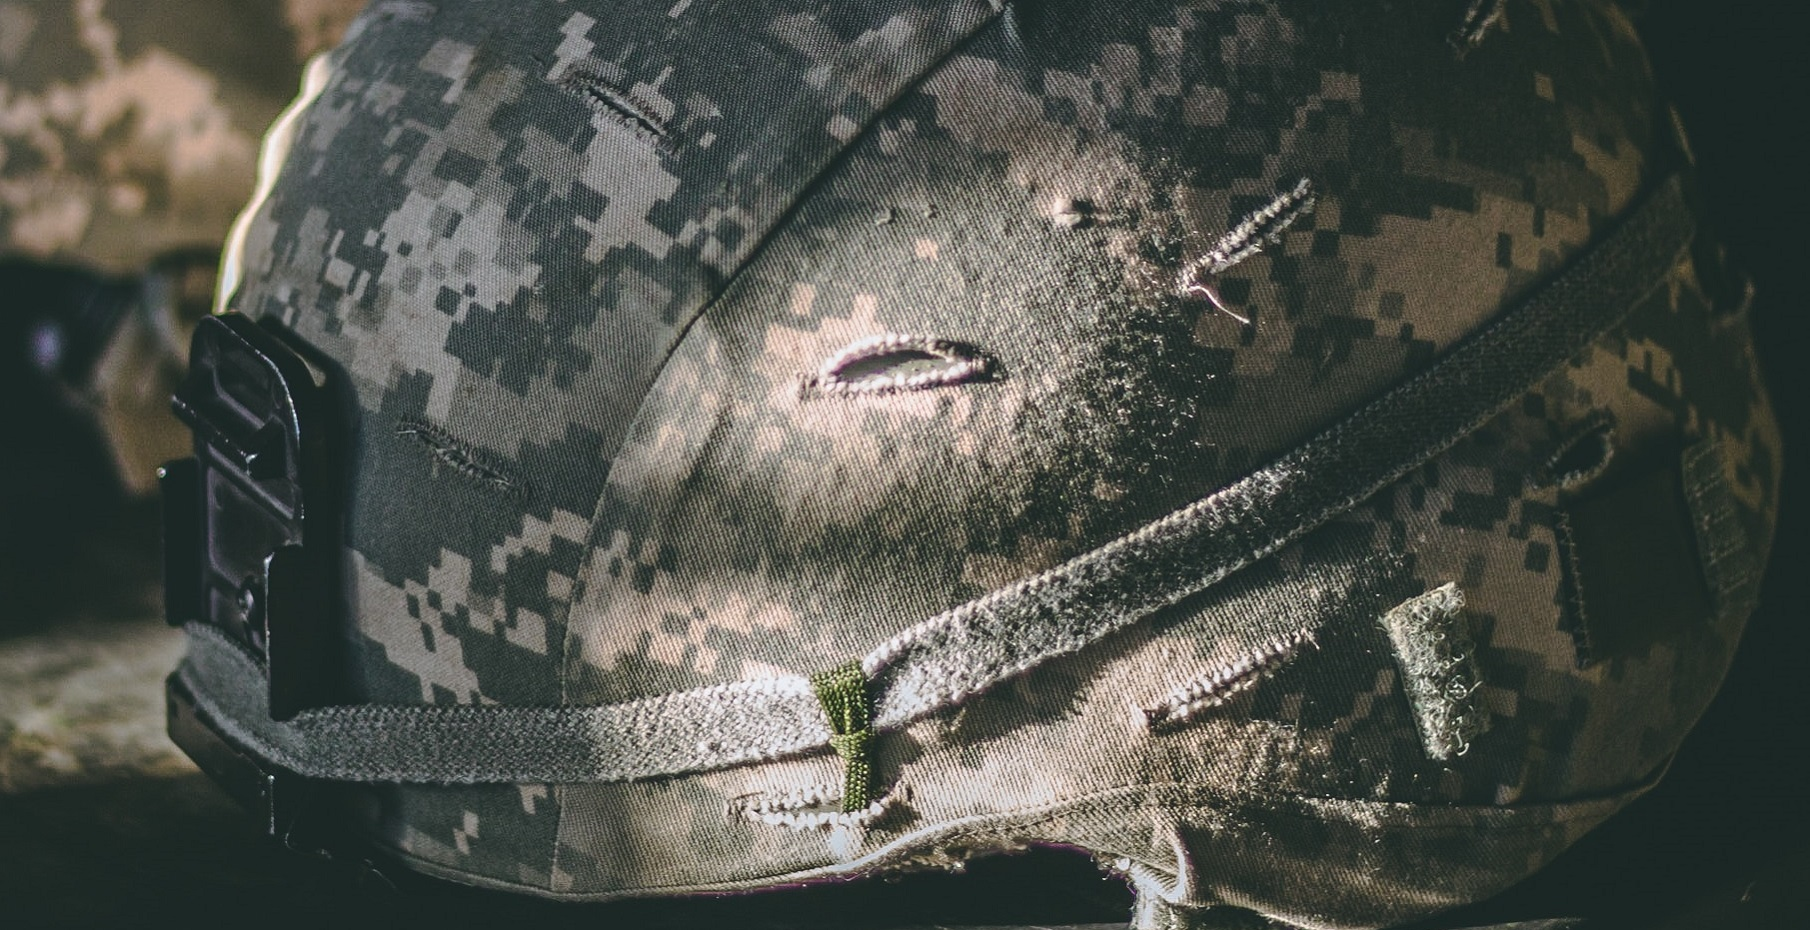 In 2005, Public Law 109-13 was signed into law that established traumatic injury insurance for all servicemembers who are covered by Servicemembers Group Life Insurance (SGLI). This law provides payment of up to $100,000 for servicemembers who have suffered a traumatic injury.